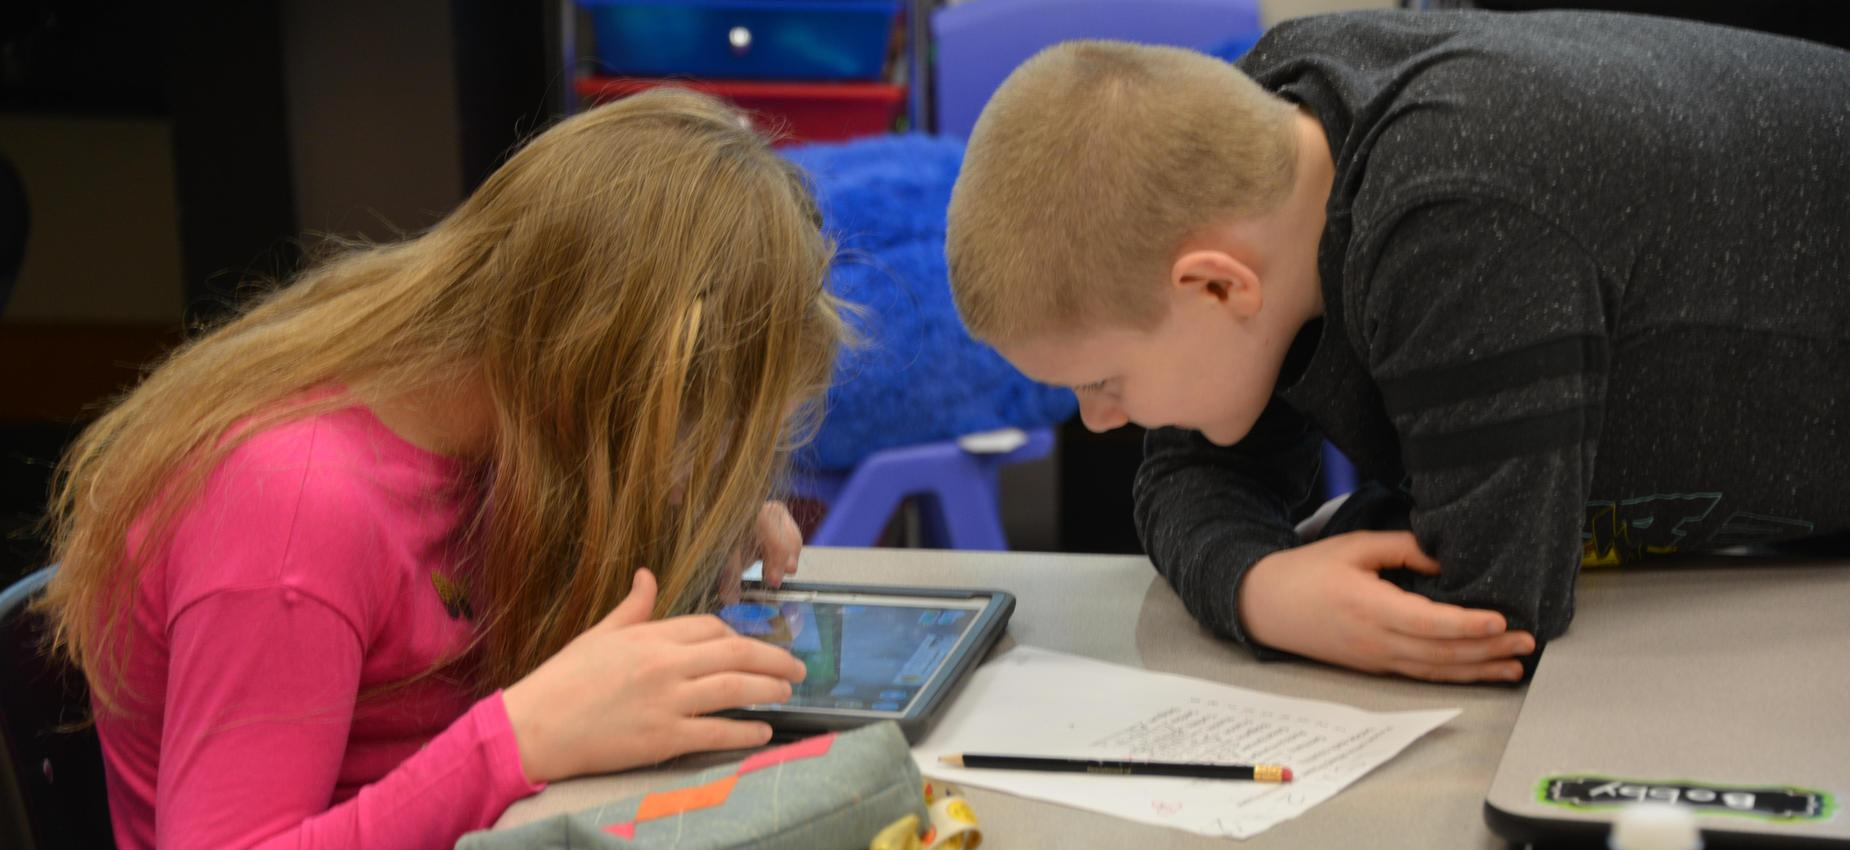 students looking at ipad together